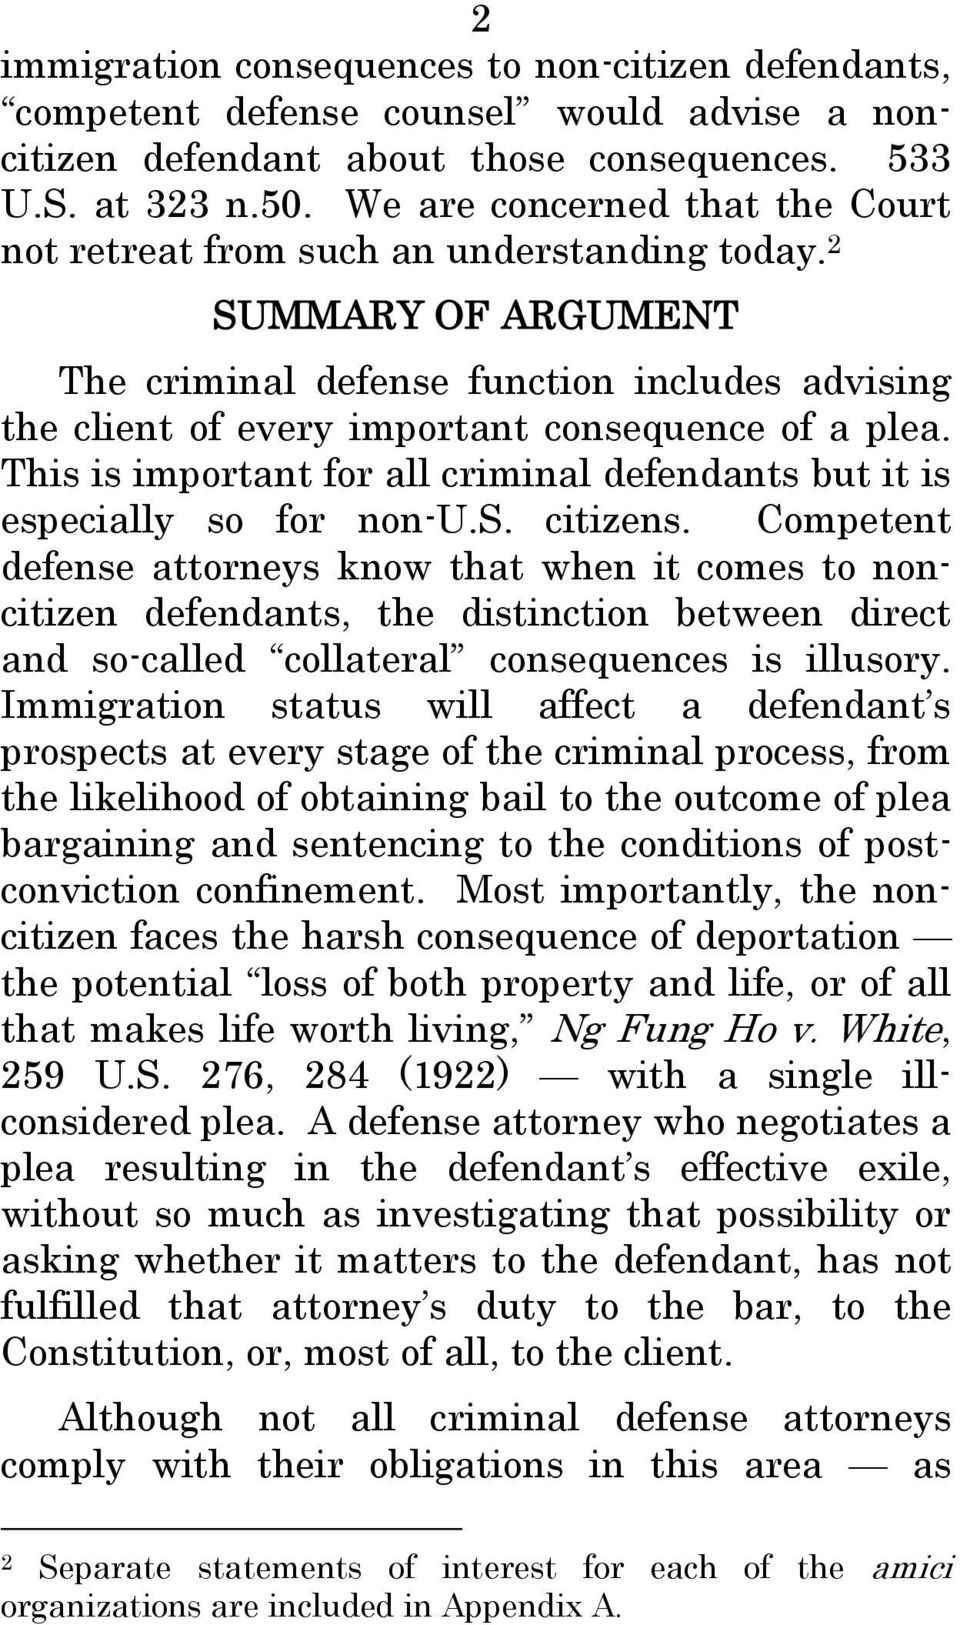 This is important for all criminal defendants but it is especially so for non-u.s. citizens.